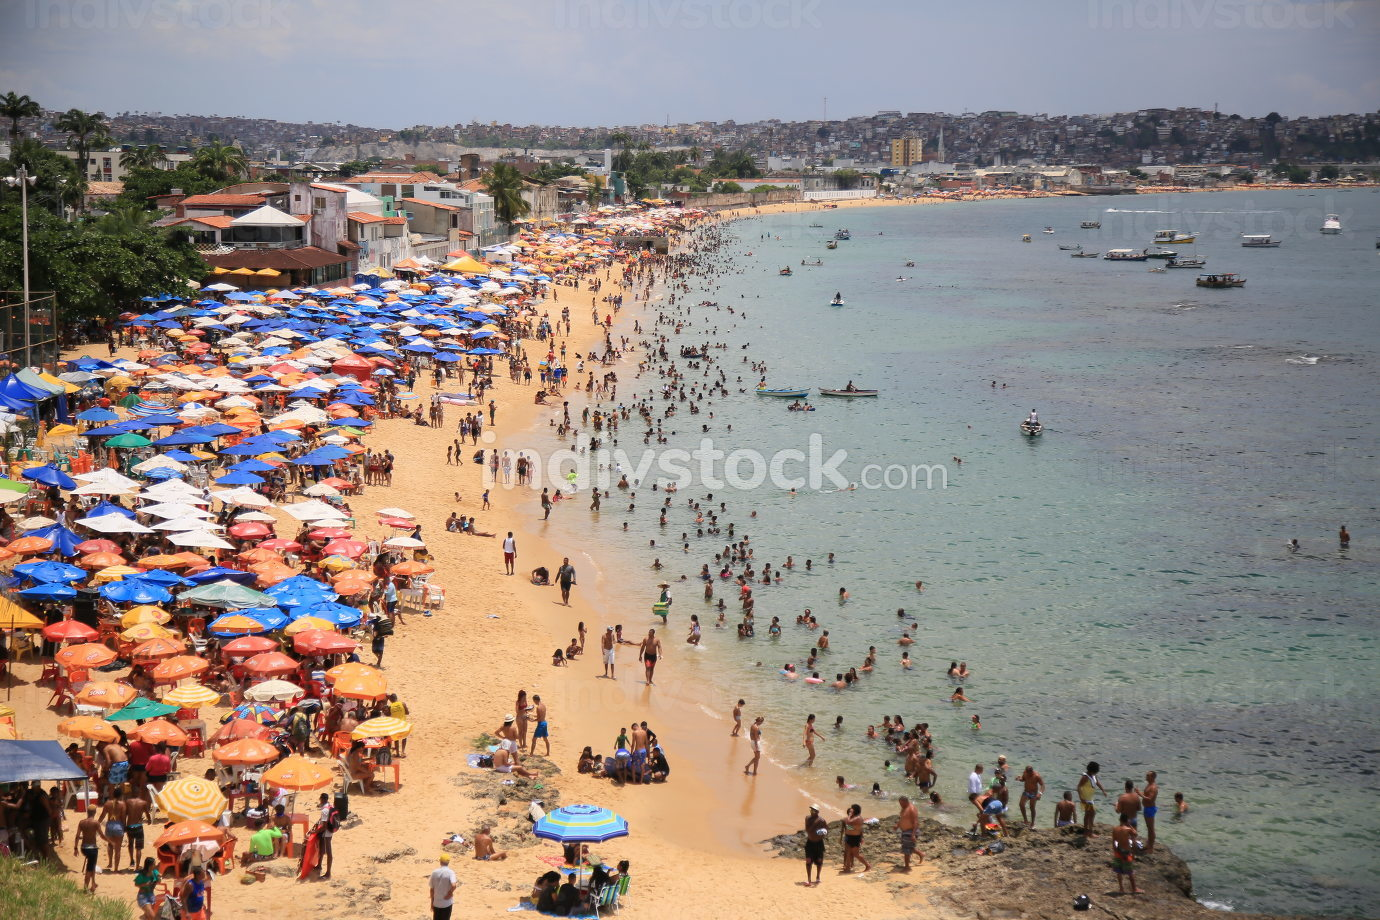 salvador, bahia Brazil, january 1, 2020,maritime procession by the bay of all saints,people are seen at Boa Viagem Beach in Salvador city